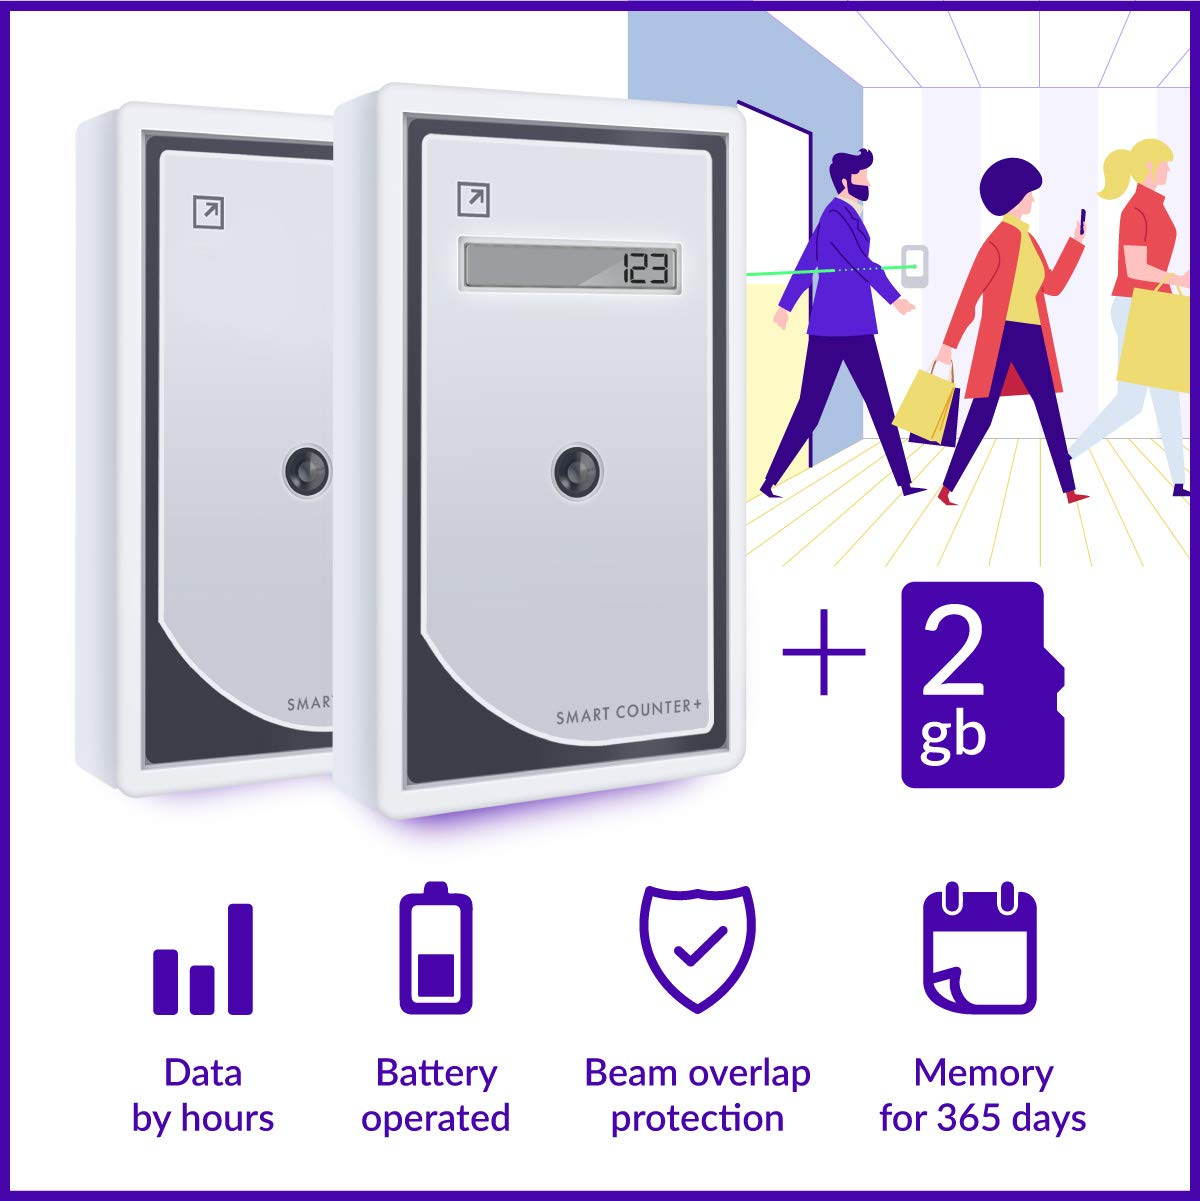 People Counter Smart Counter Data: Stores Data for 365 Days | Counts Visitor passages by Days and Hours with time Stamps | Infrared Door Counter | Customer Traffic Counter | Retail Patron Counter